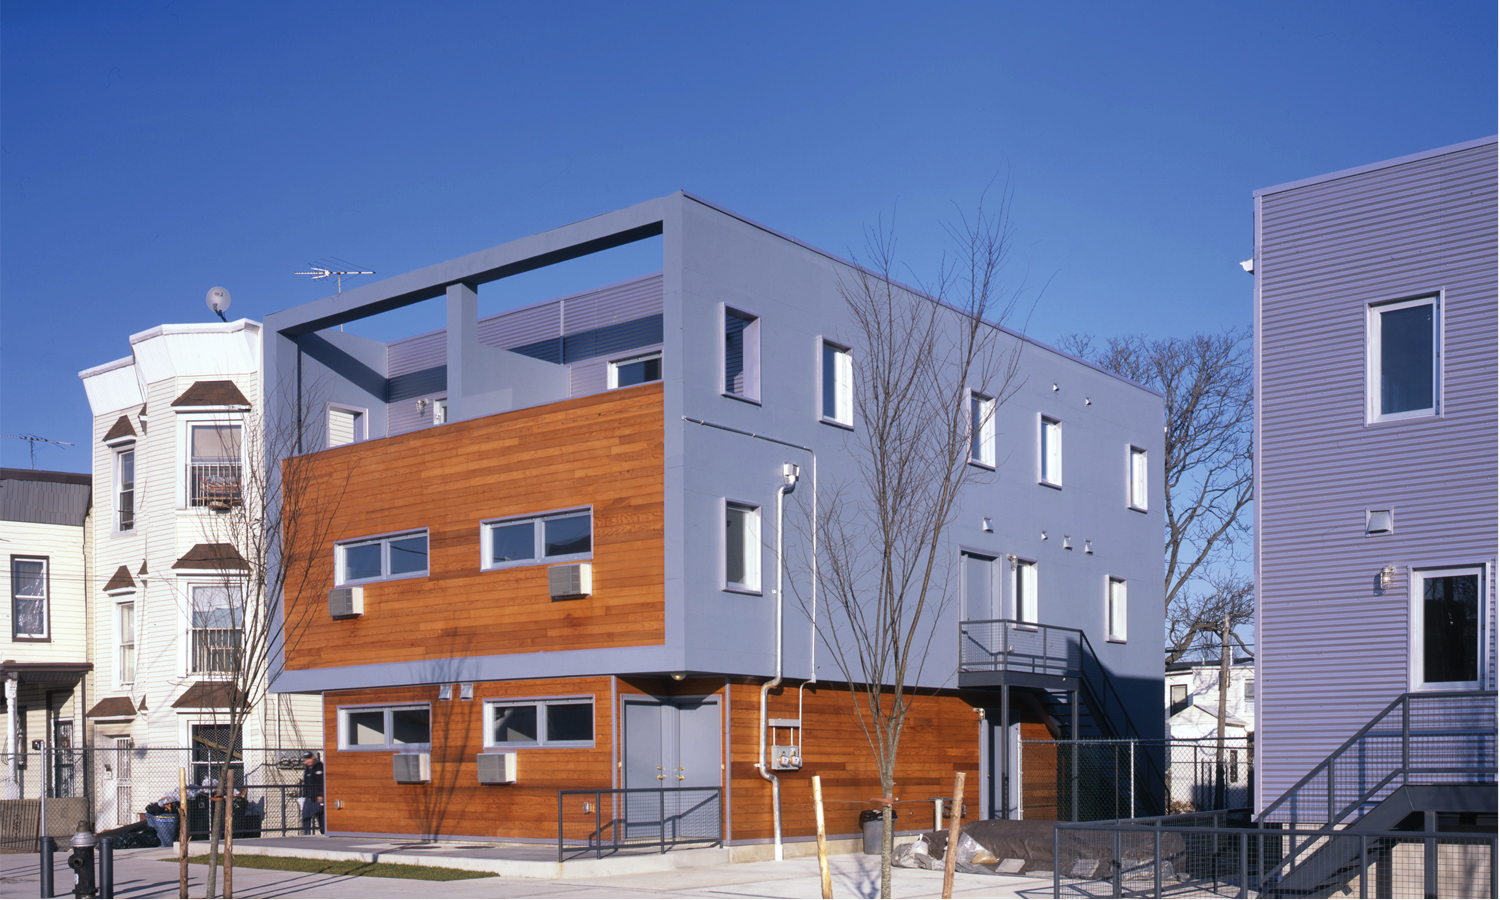 Homes at Glenmore Gardens in East New York, built in 2007 through Bloomberg's New Foundations program. photo via LTL Architects